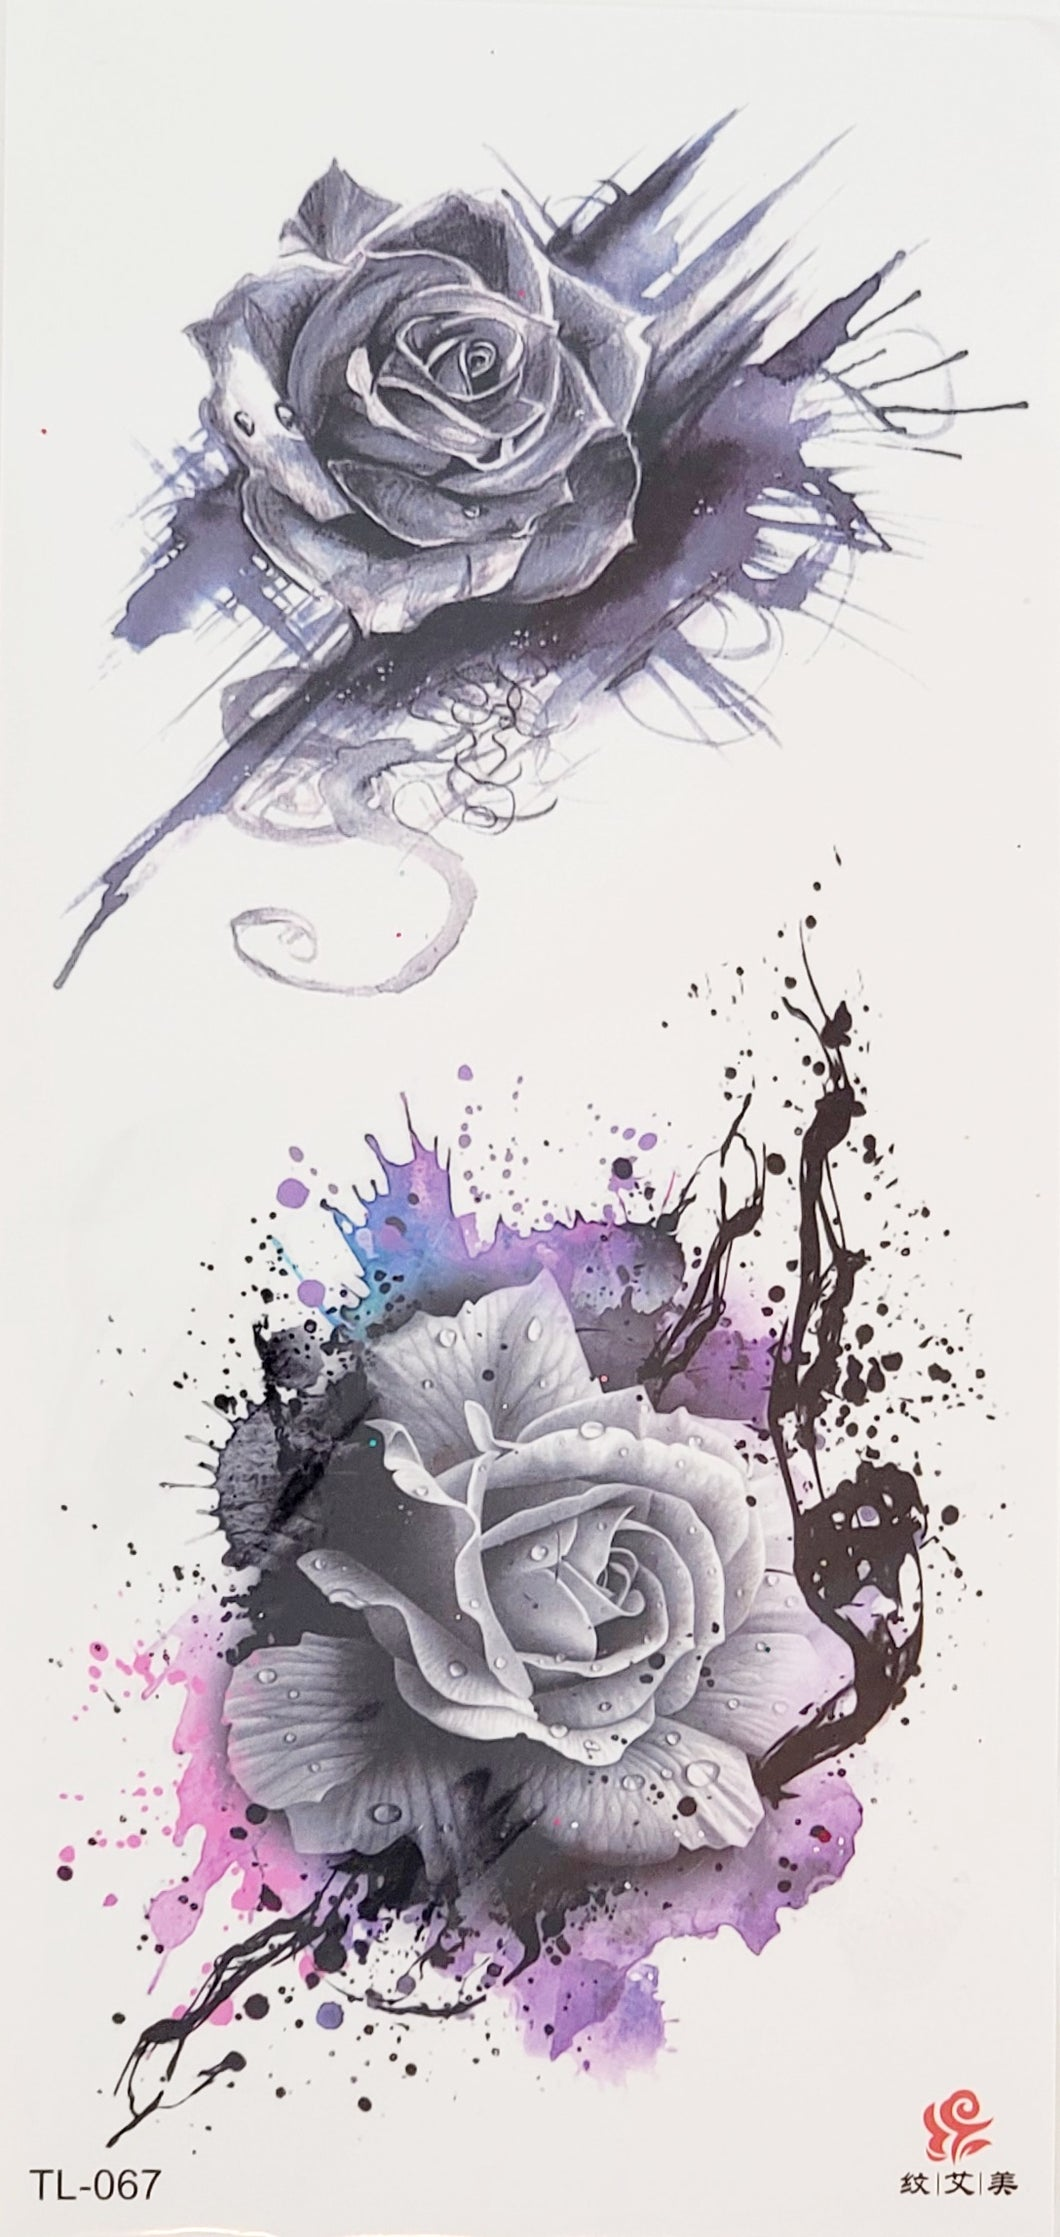 Shades of Purple and Black Rose Tattoo - 7 x 3